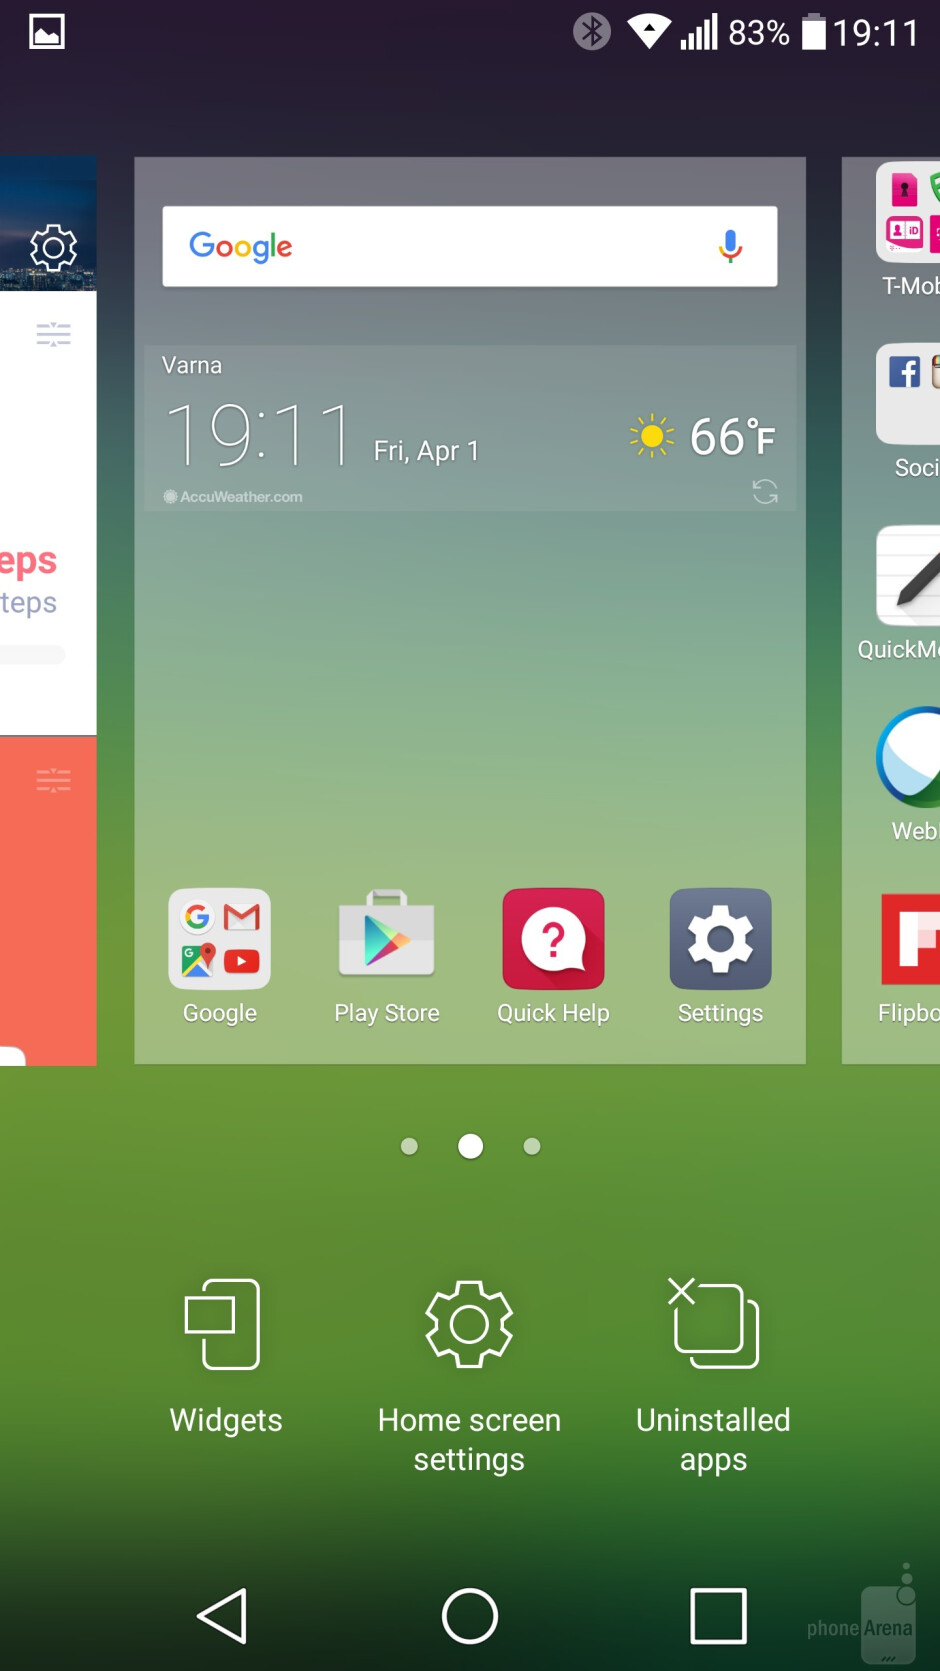 Interface of the LG G5 - LG G5 vs Apple iPhone 6s Plus